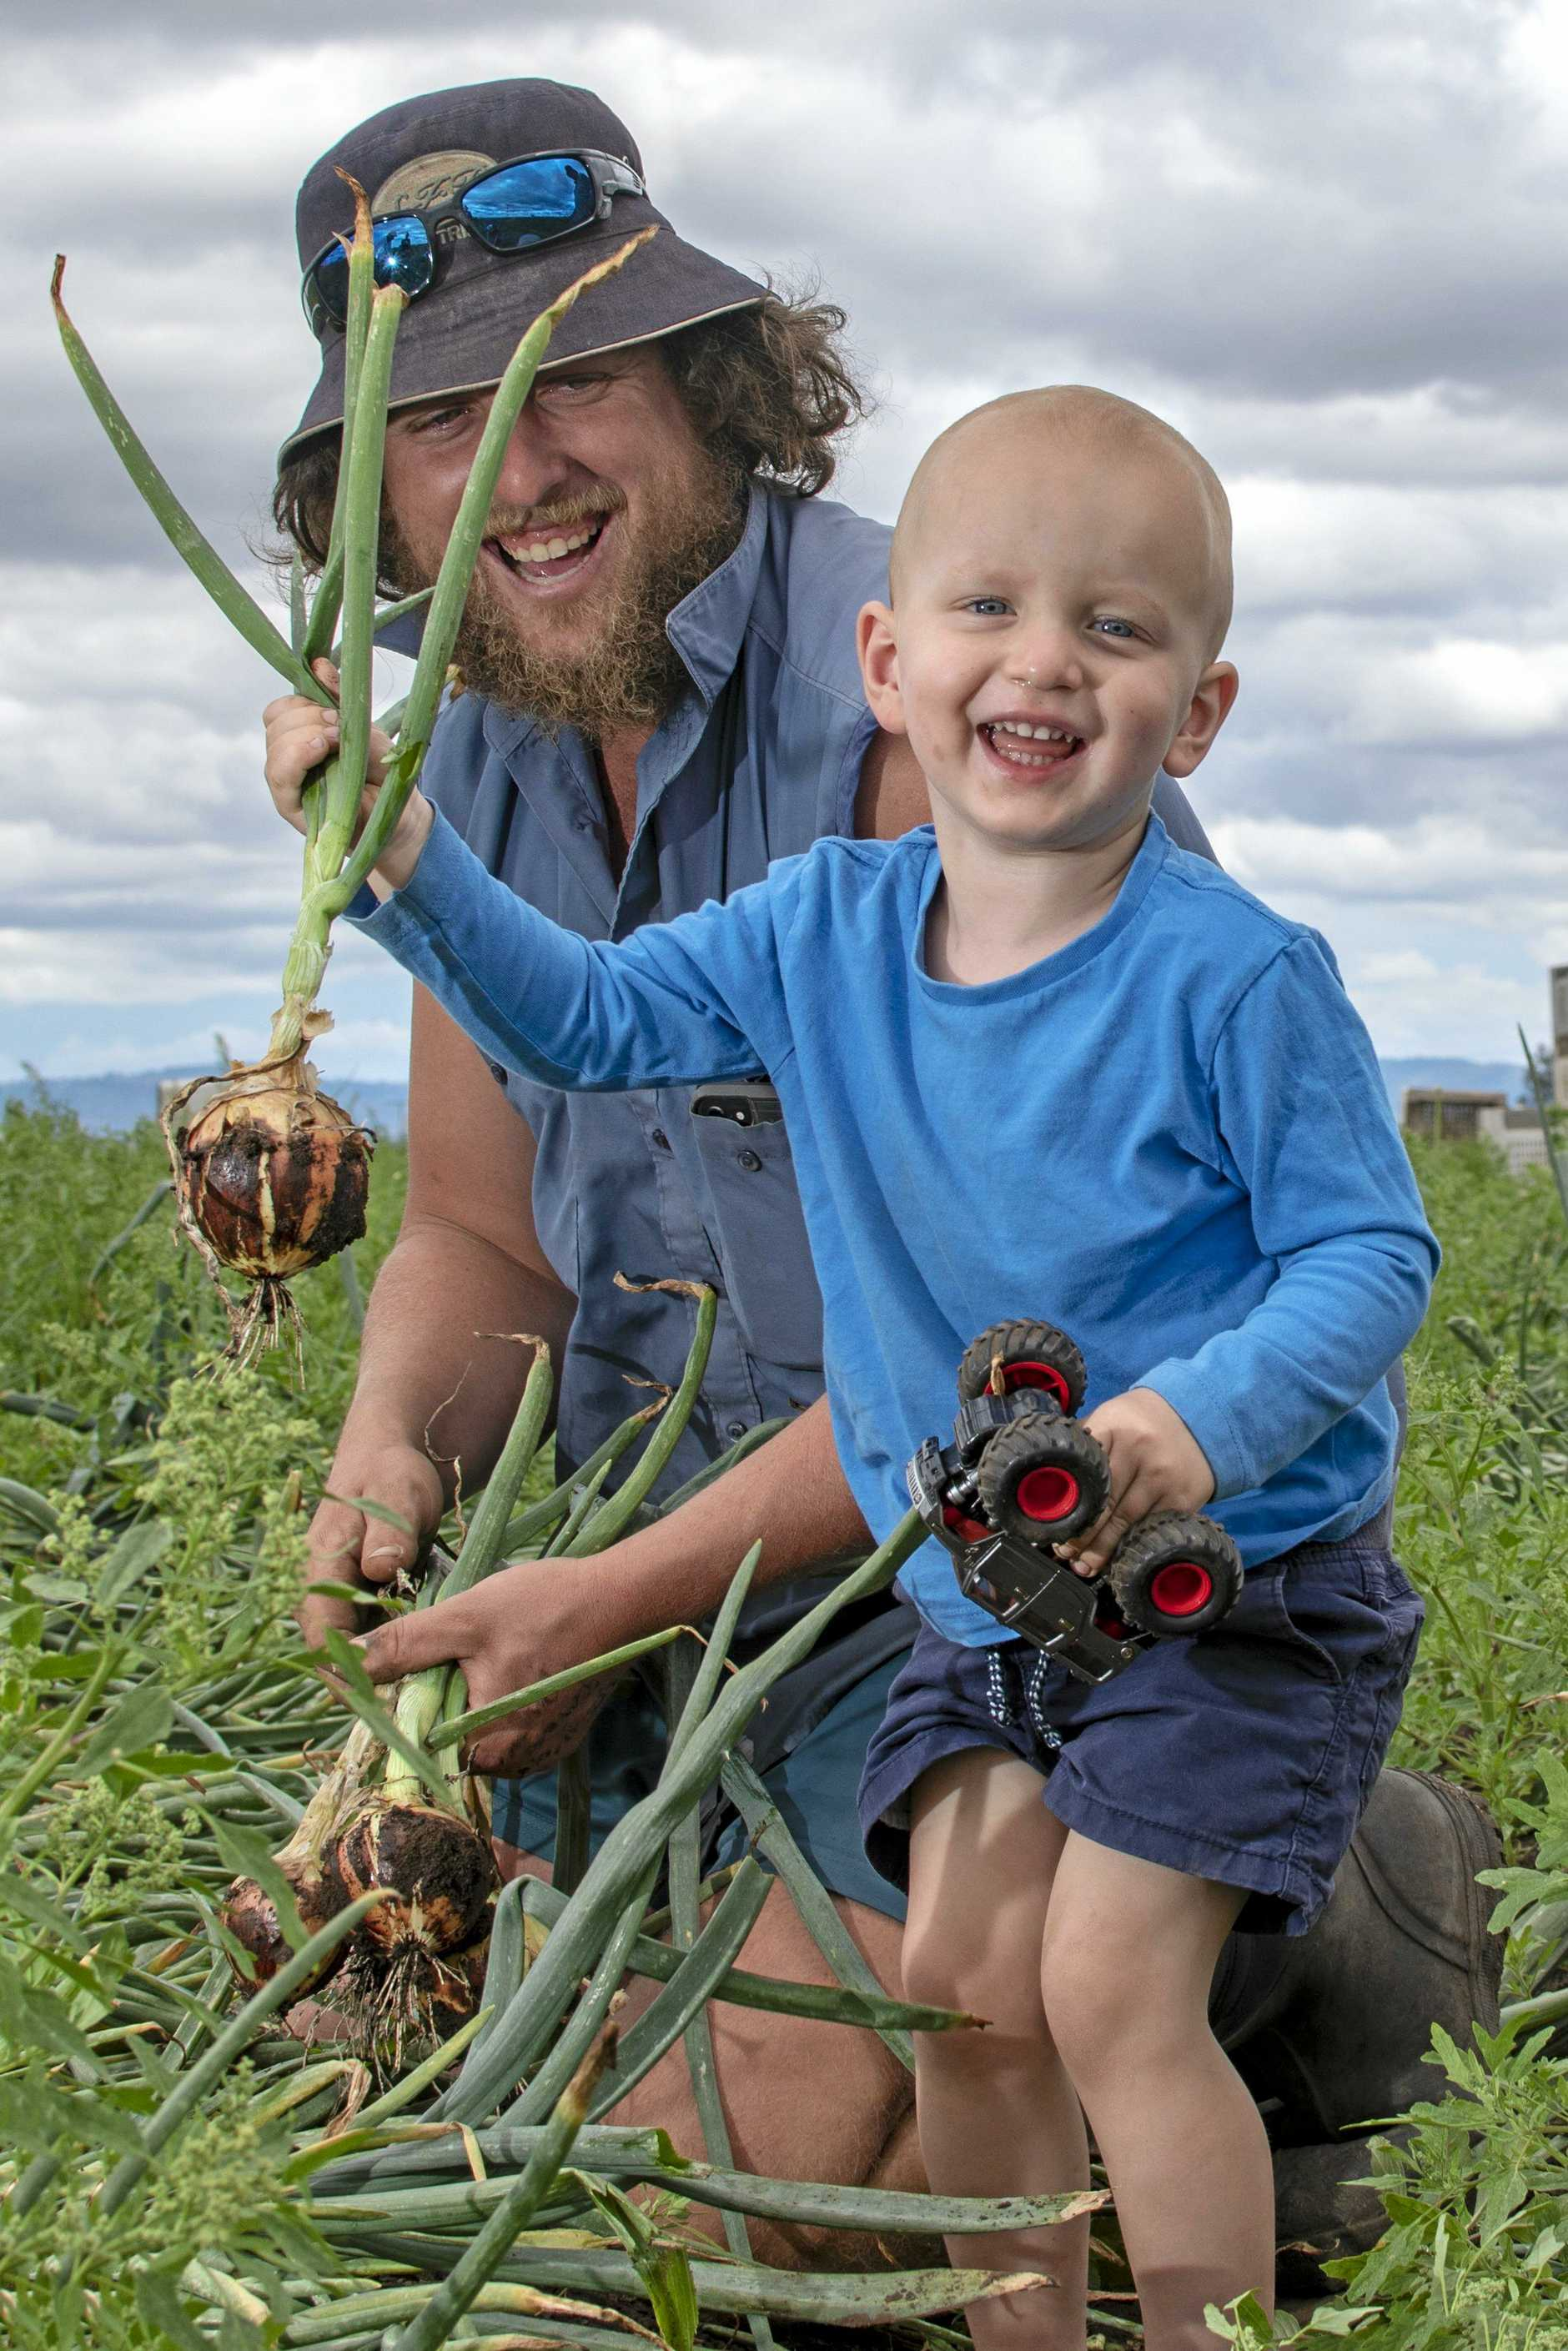 LOOKING GOOD: Andrew Mildren, Reck Farms, Lower Tent Hil, with his son Cooper, 2, inspecting some onions.